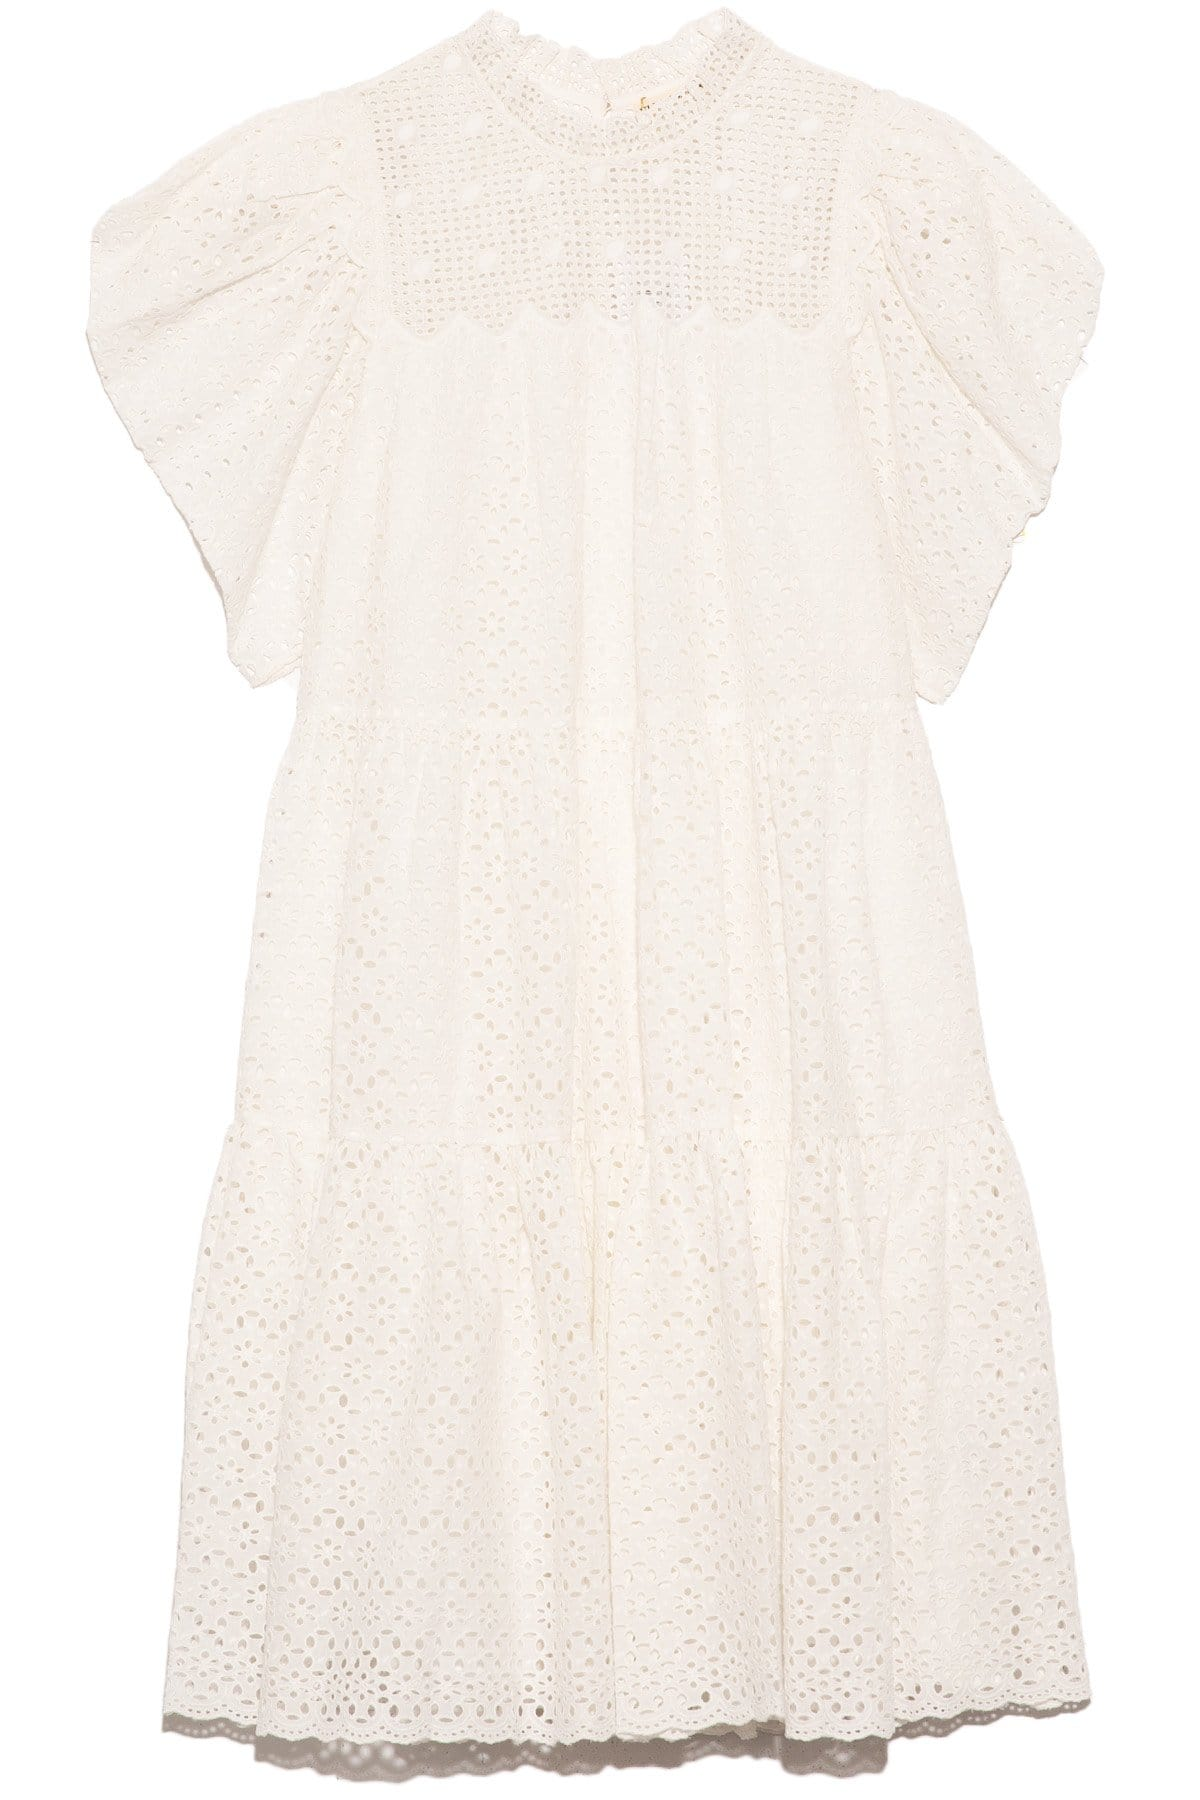 A-line General Print Button Closure Tiered Above the Knee Scalloped Trim Puff Sleeves Sleeves Cotton Loose Fit